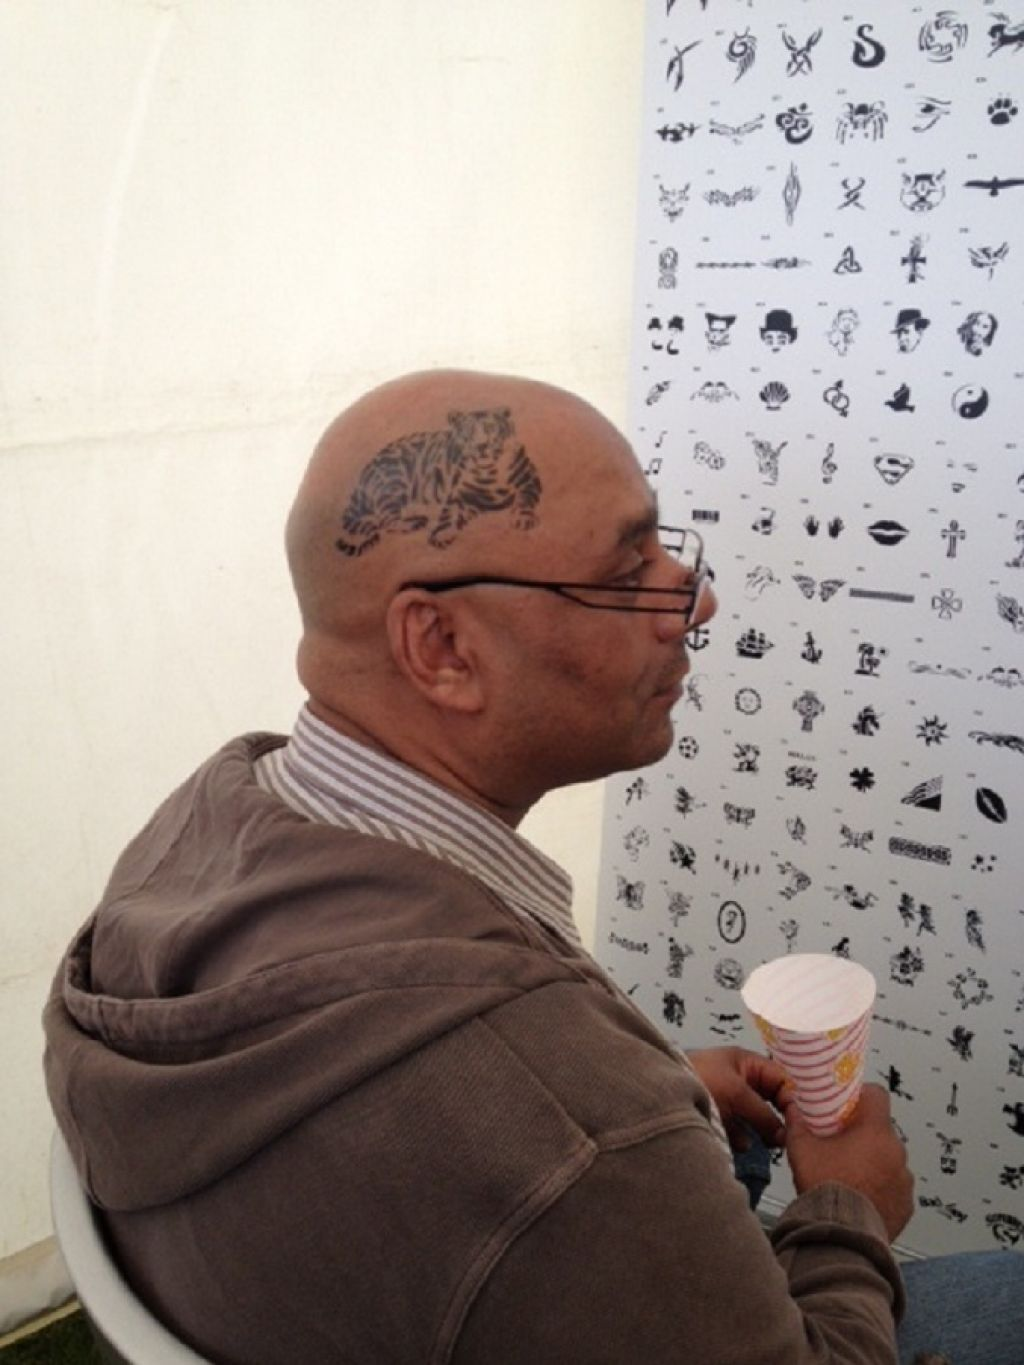 Unique Temporary Airbrush Tattoo On Bald Head Pictures